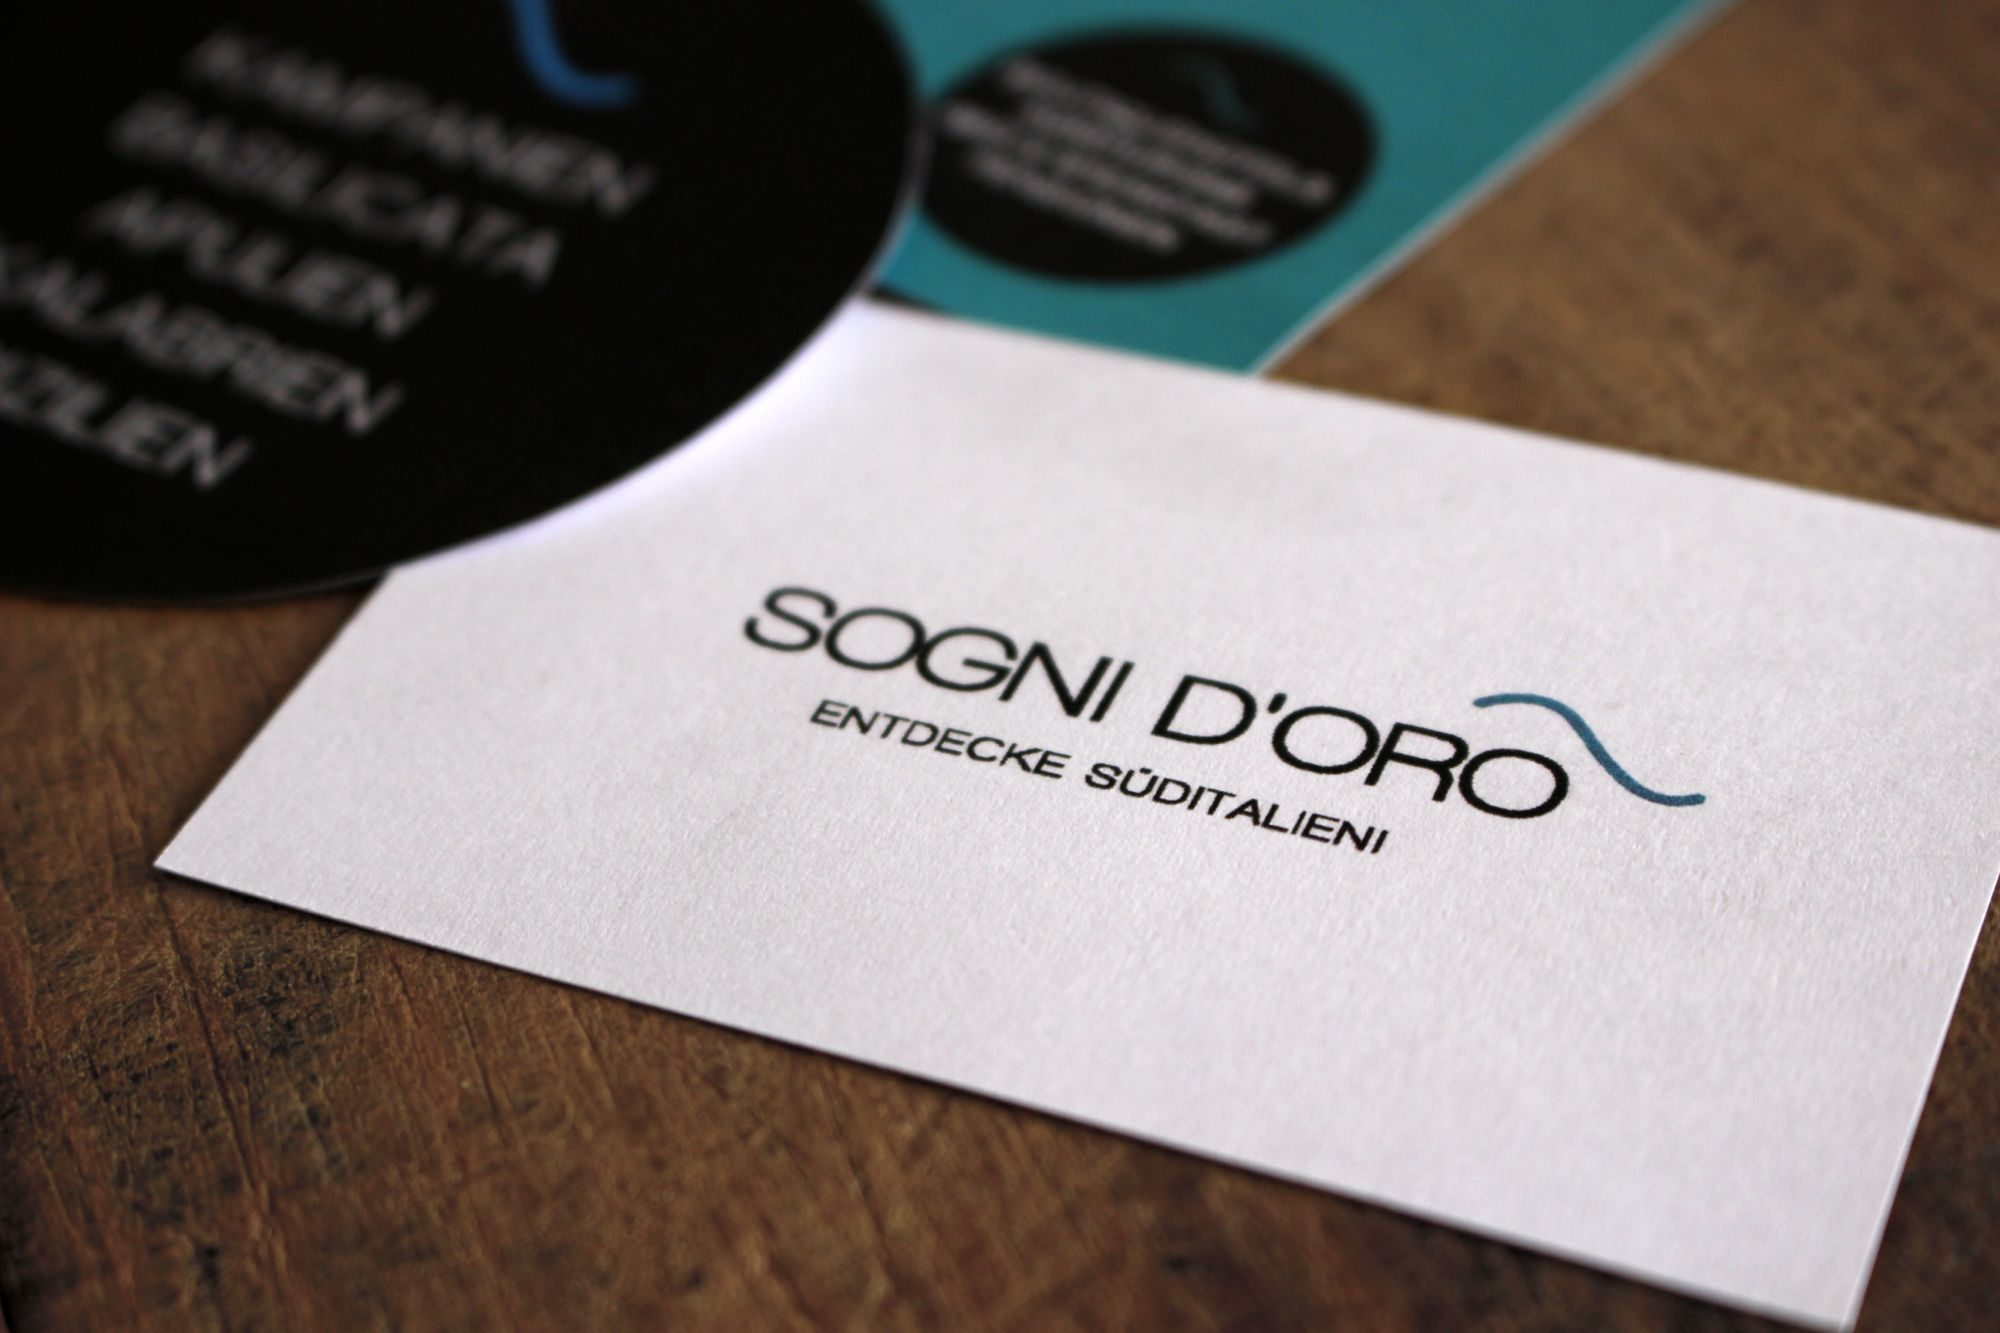 Corporate Design für Sogni d'Oro